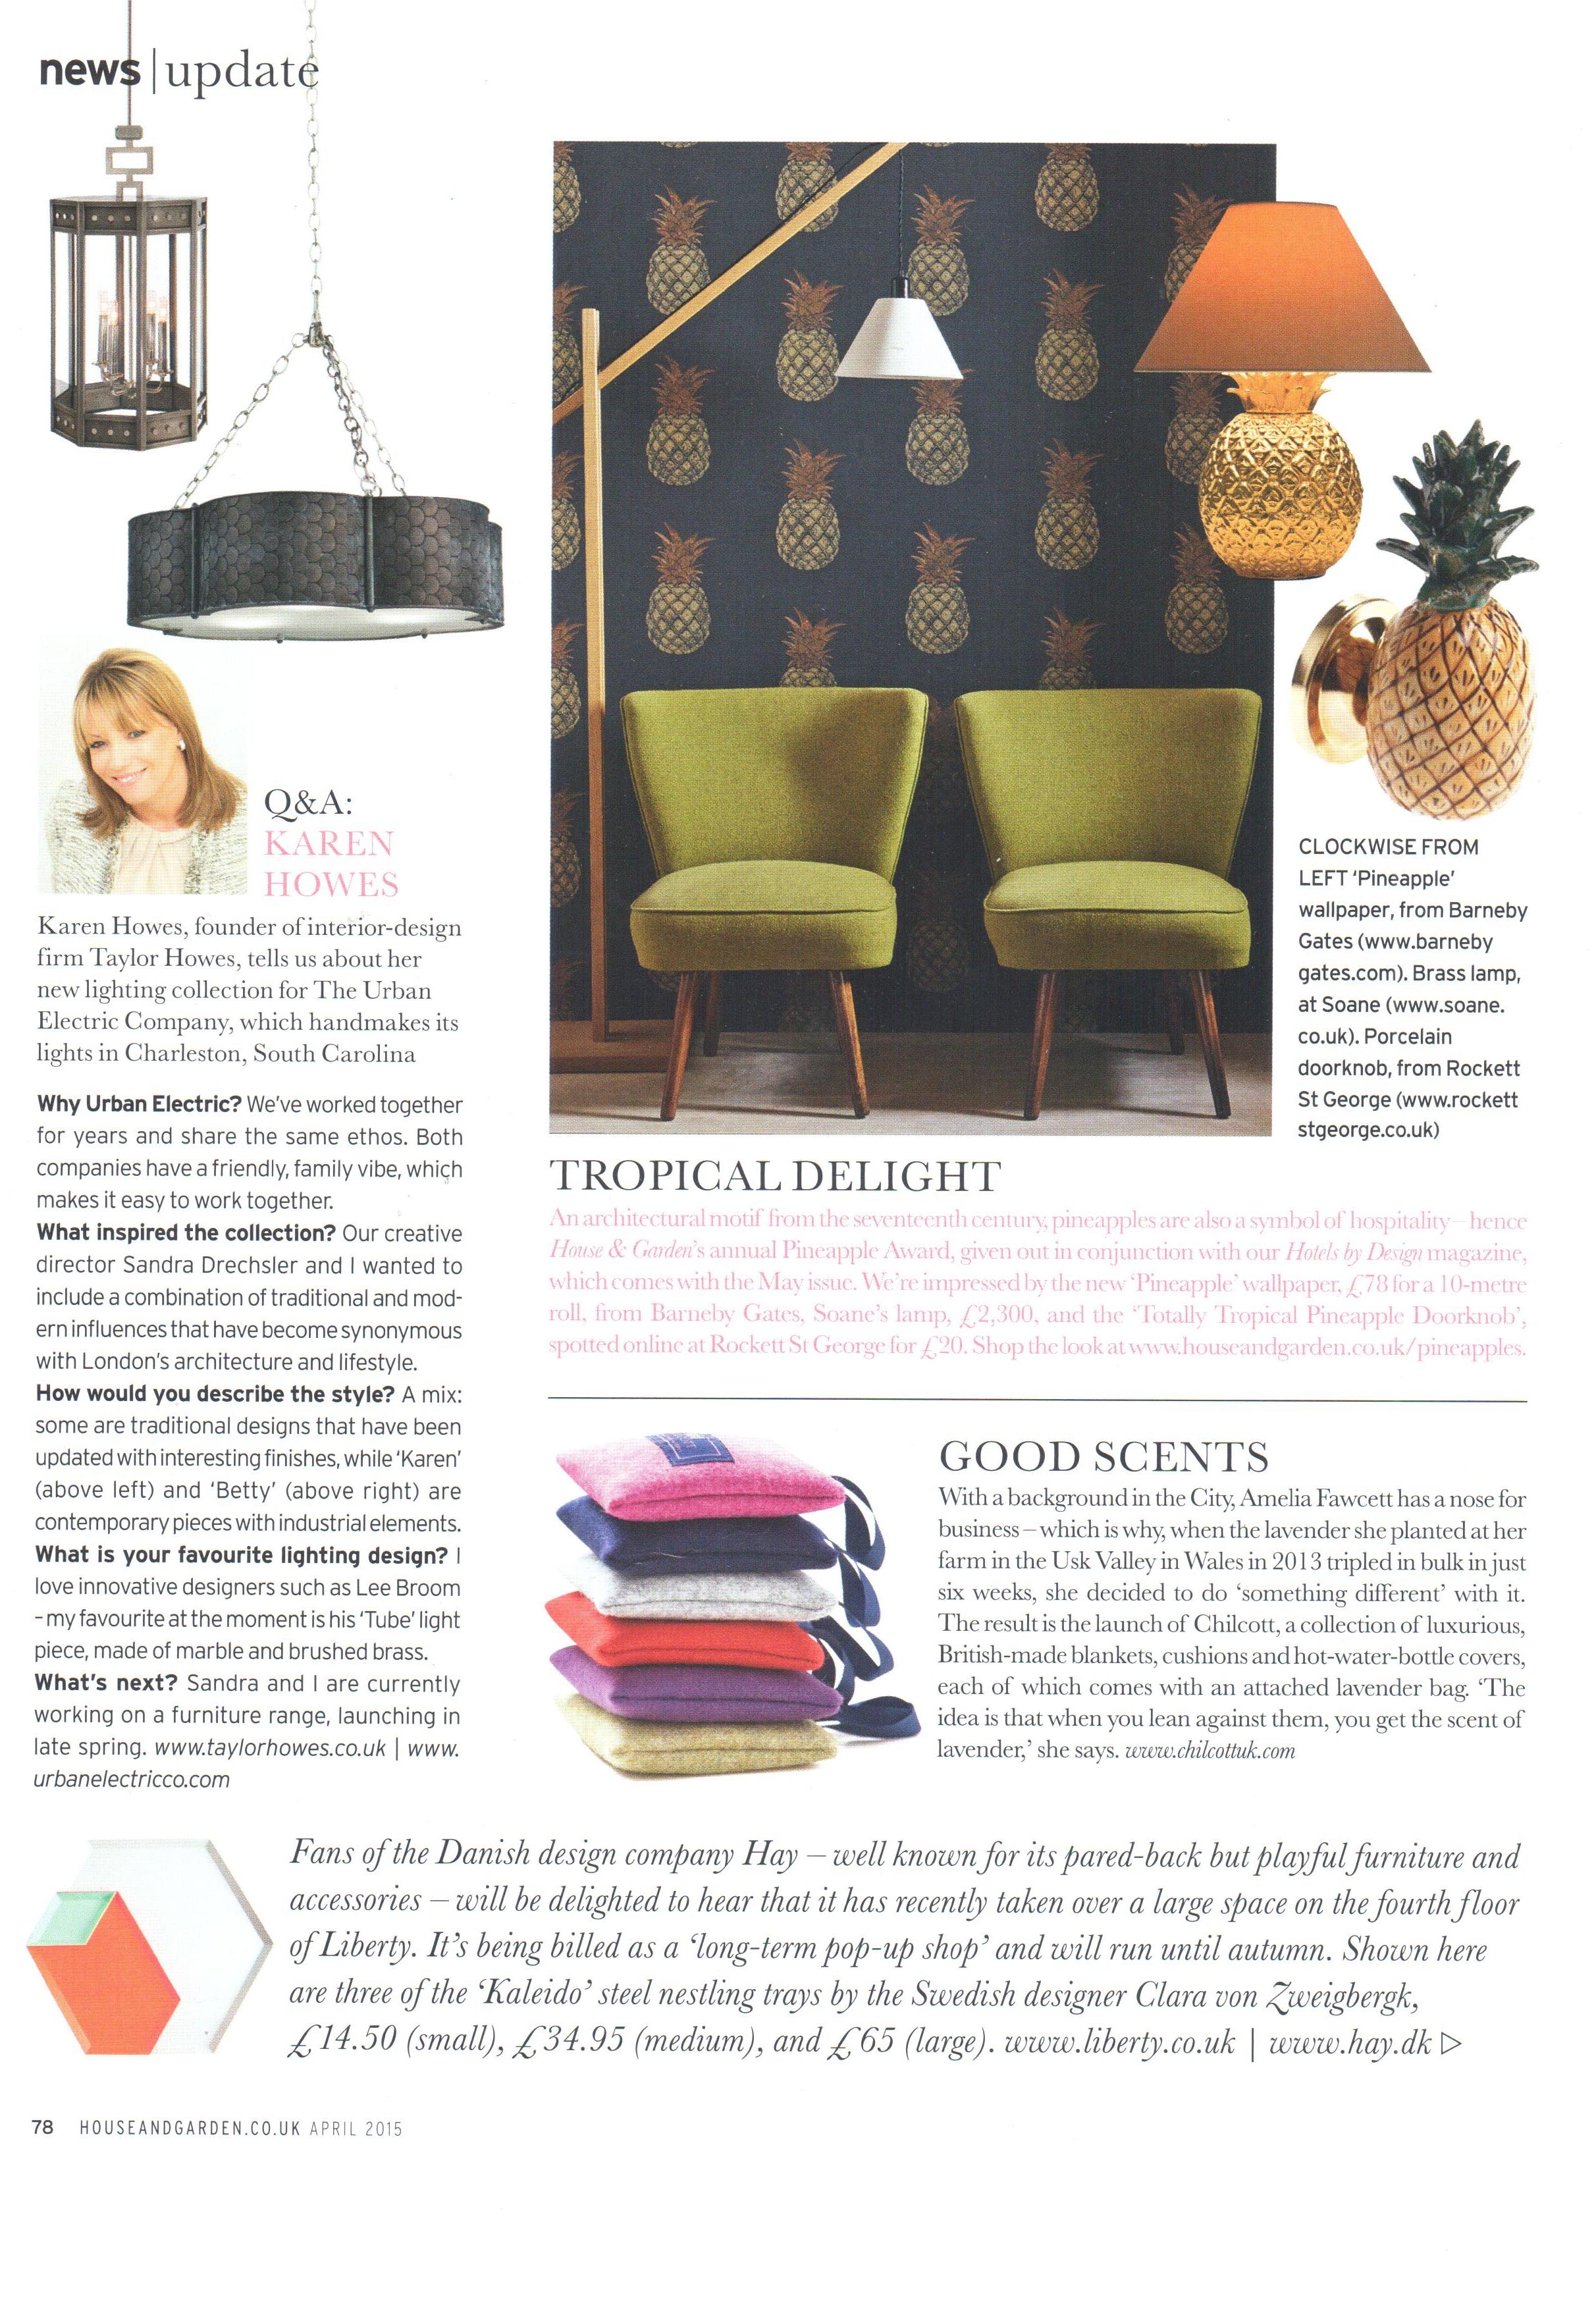 House & Garden - Article - April 2015